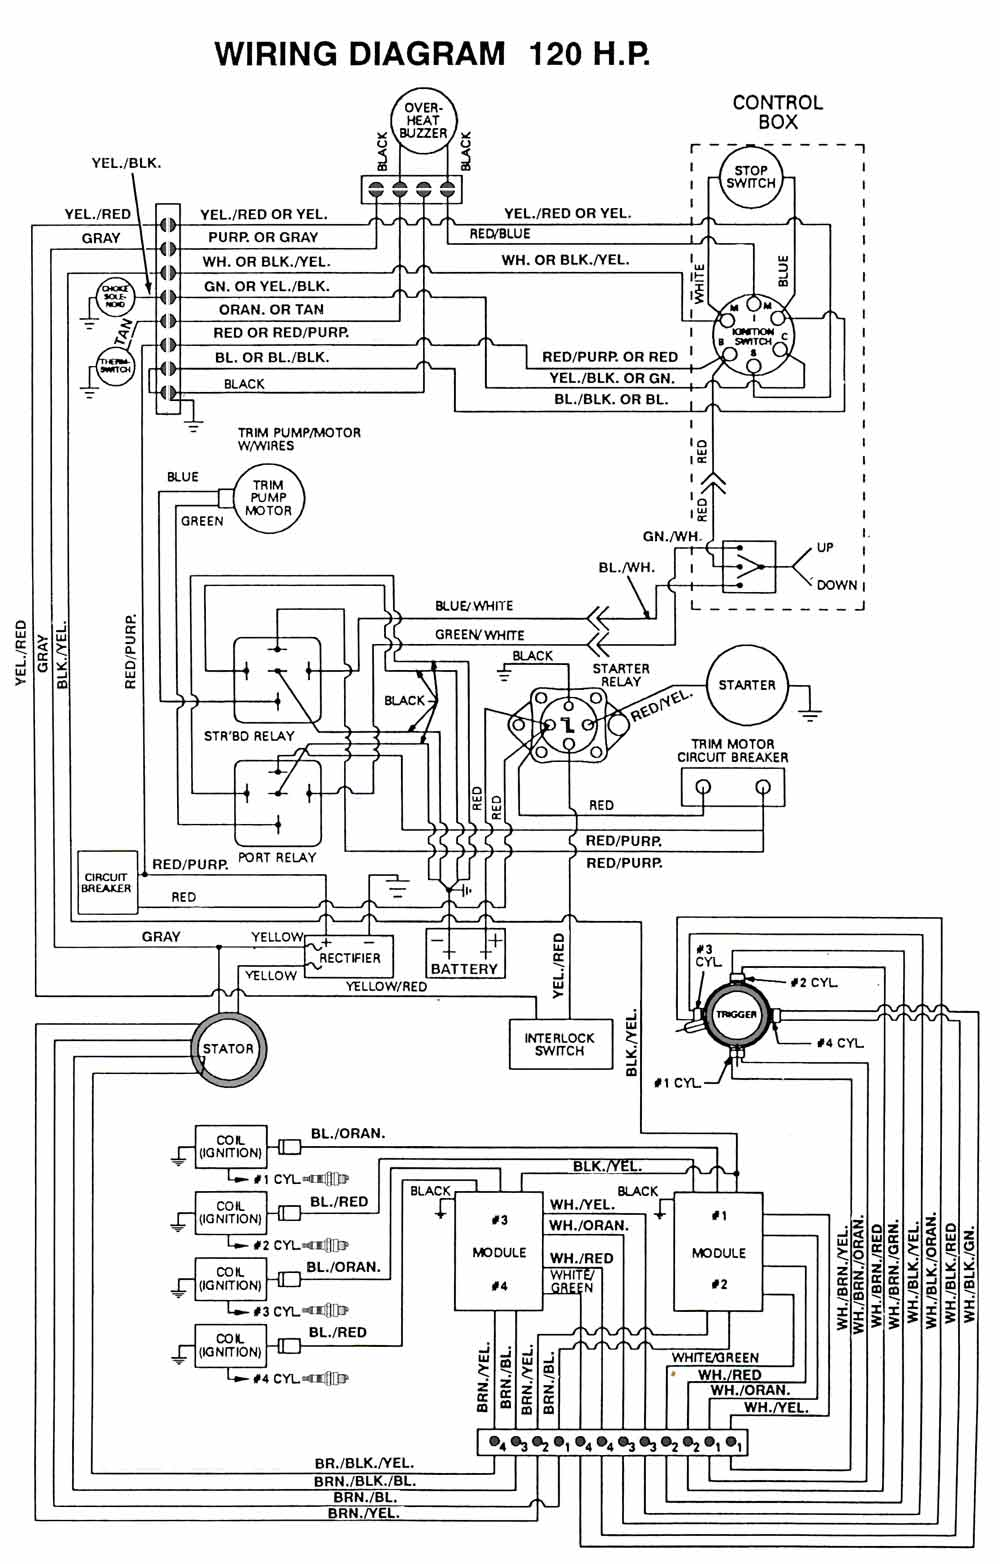 1996 Force Outboard Motor Diagram - Today Wiring Schematic Diagram on